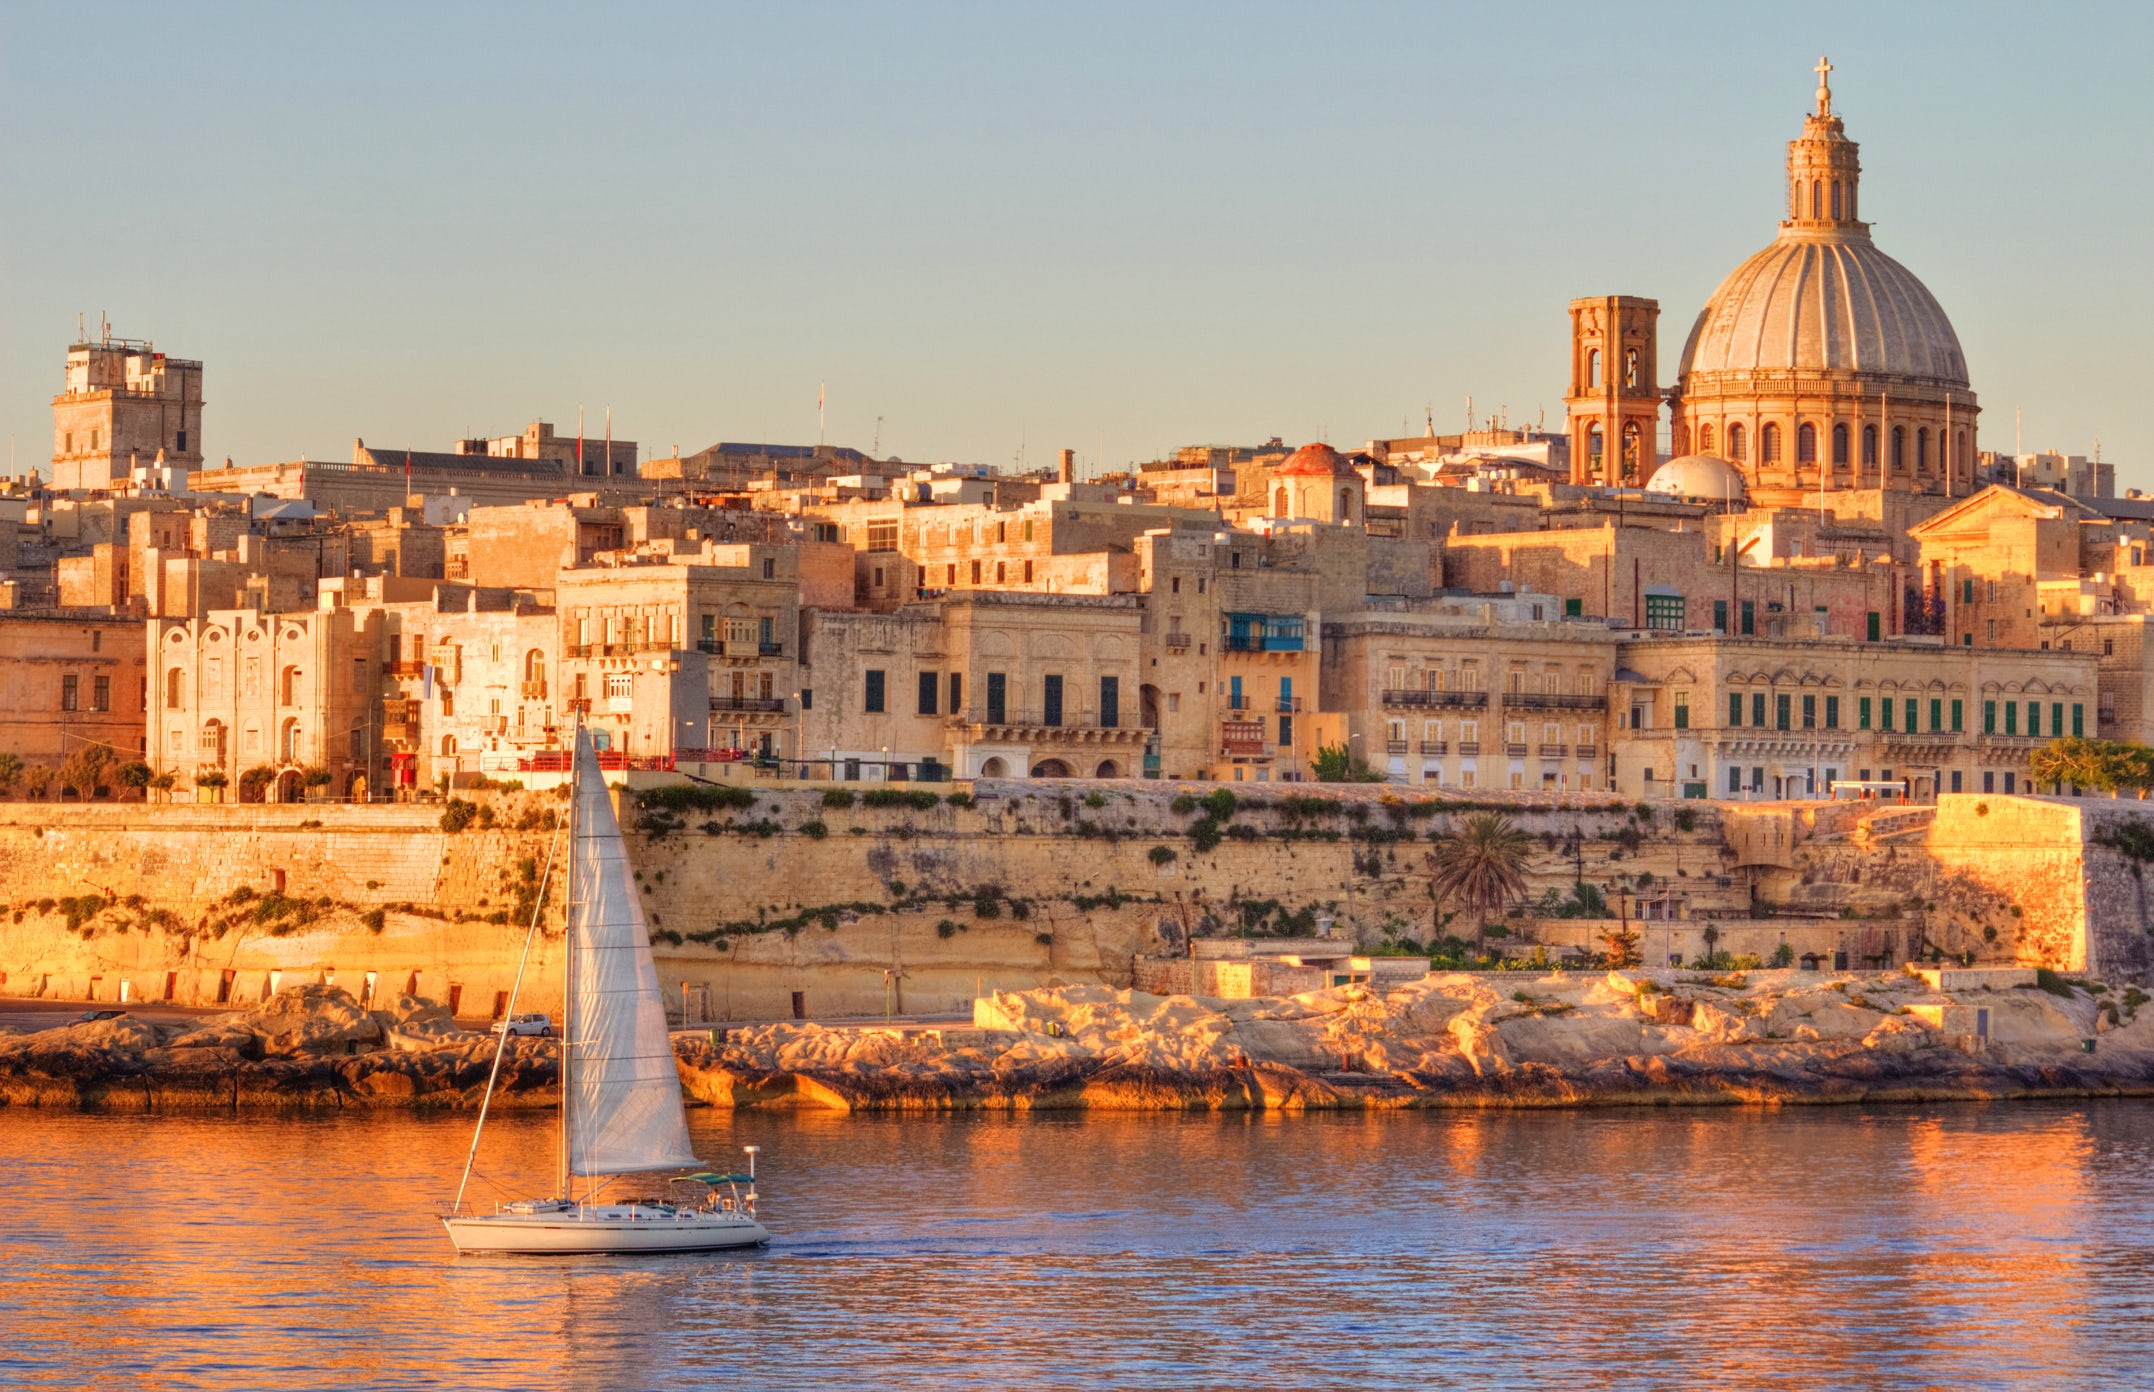 Valletta: An Elegant and Cultured Capital